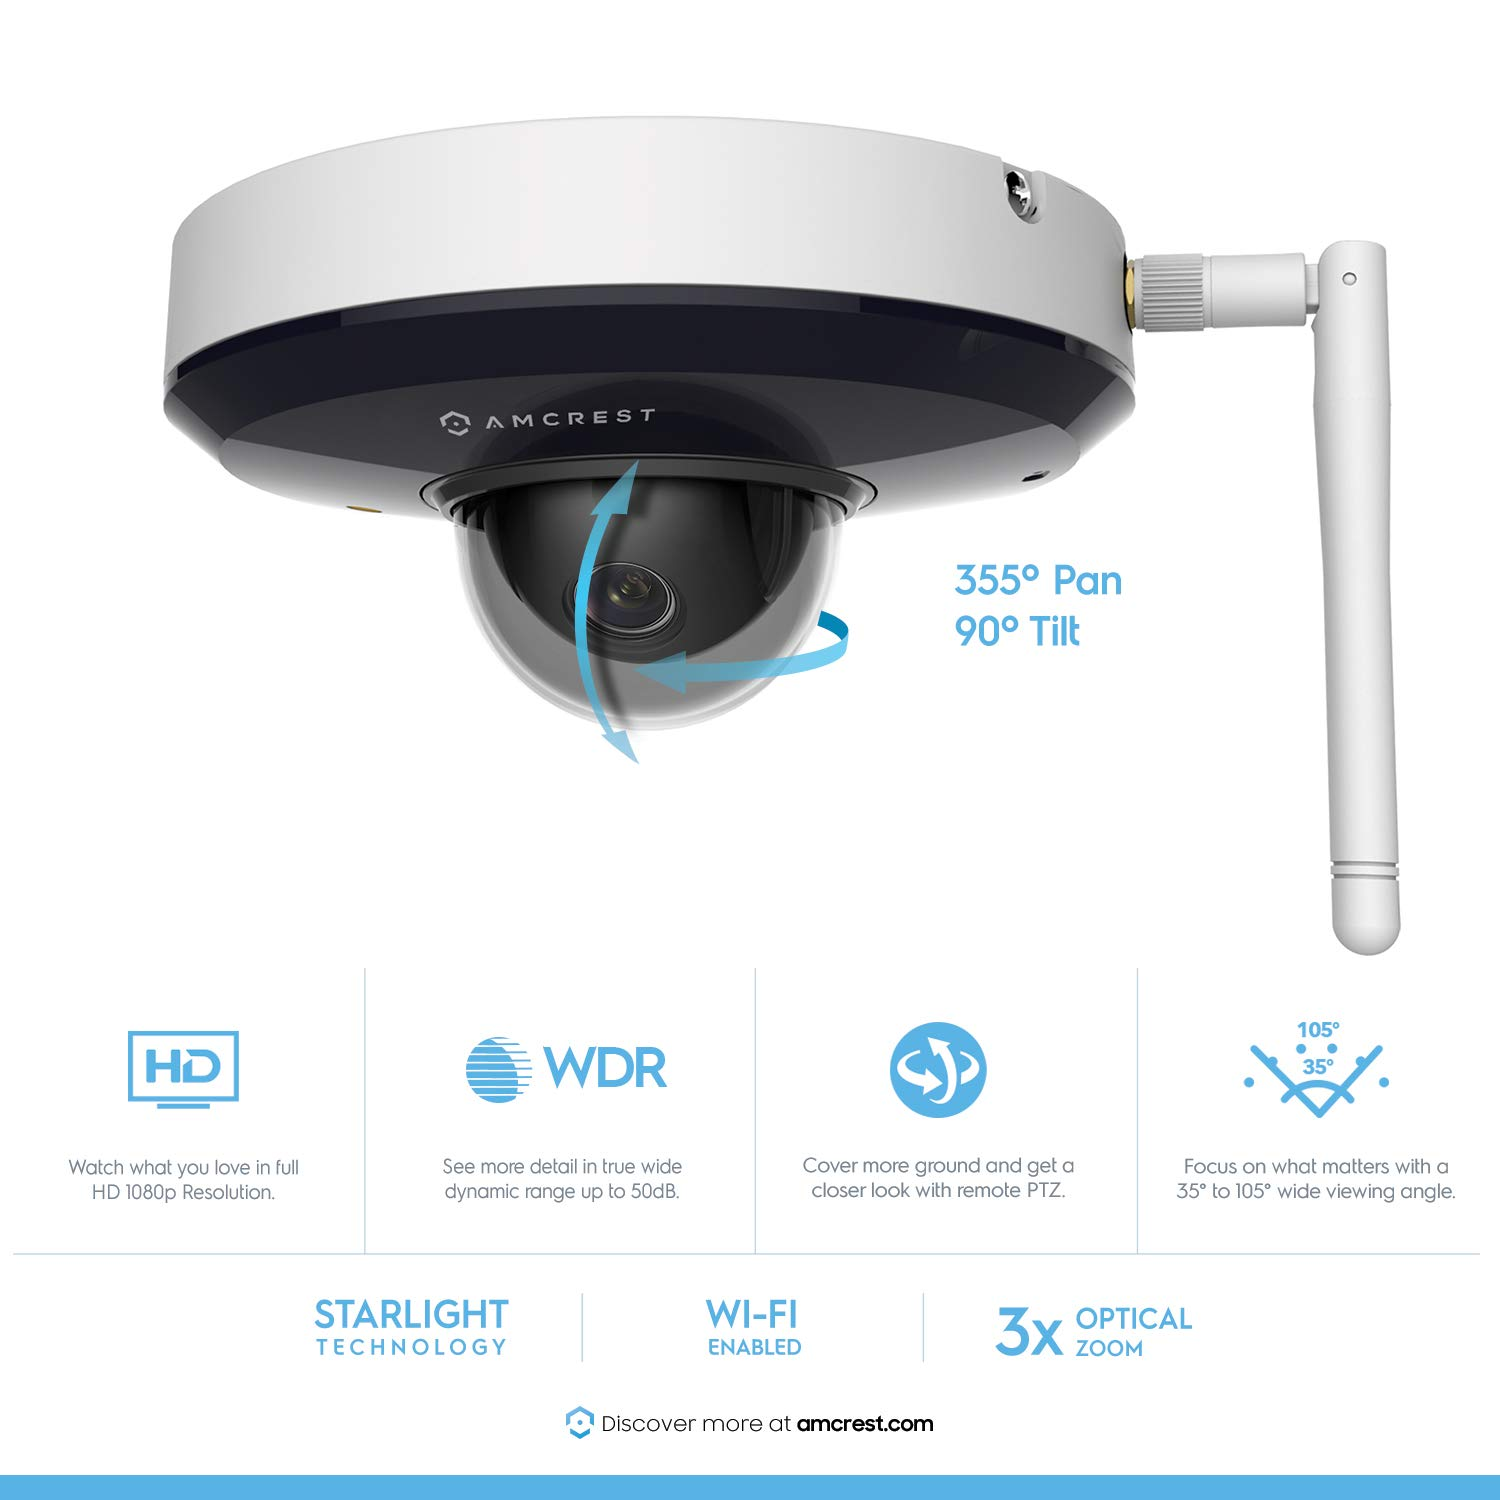 Amcrest ProHD 1080P PTZ WiFi Camera, 2MP Outdoor Vandal Dome IP Camera (3X Optical Zoom) IK08 Vandal-Proof, IP66 Weatherproof, Dual Band 5ghz/2.4ghz, 2019 Updated Firmware, Pan/Tilt IP2M-866W (White) by Amcrest (Image #2)